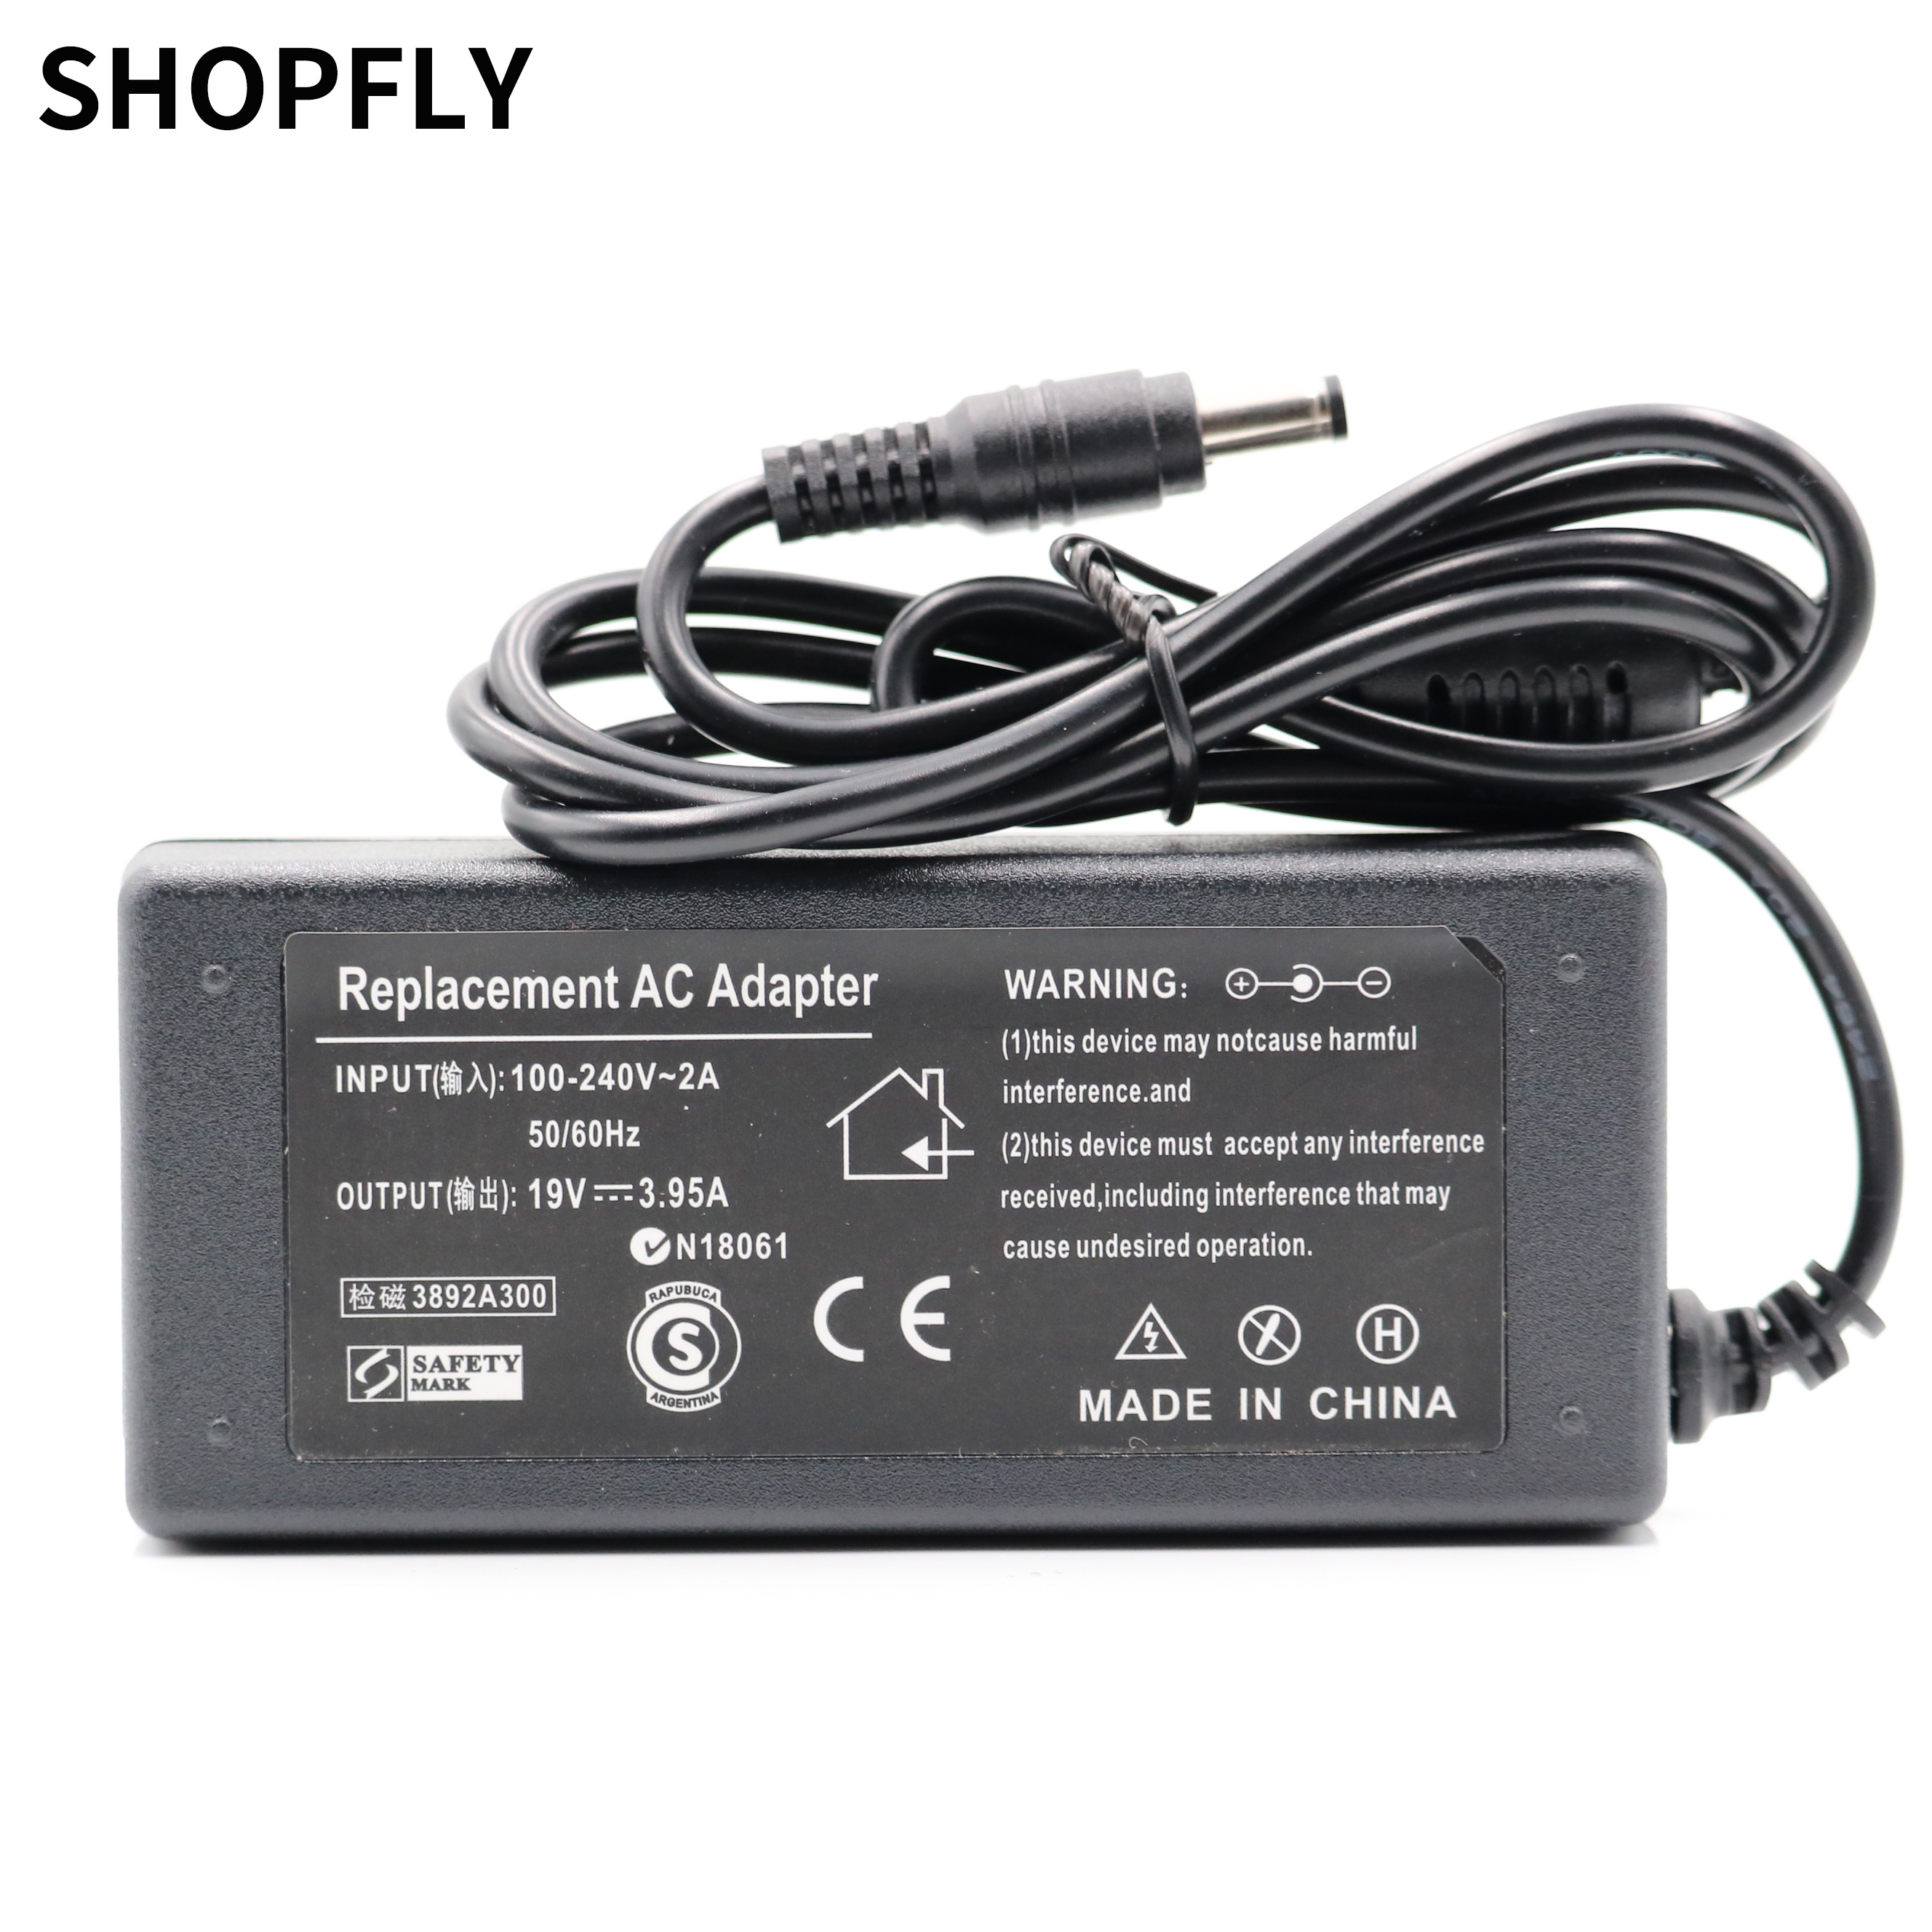 19V 3.95A 75w AC Adapter Battery Charger With Power Cord For TOSHIBA Satellite L650D L650 L655 L655D L670 C650D Laptop